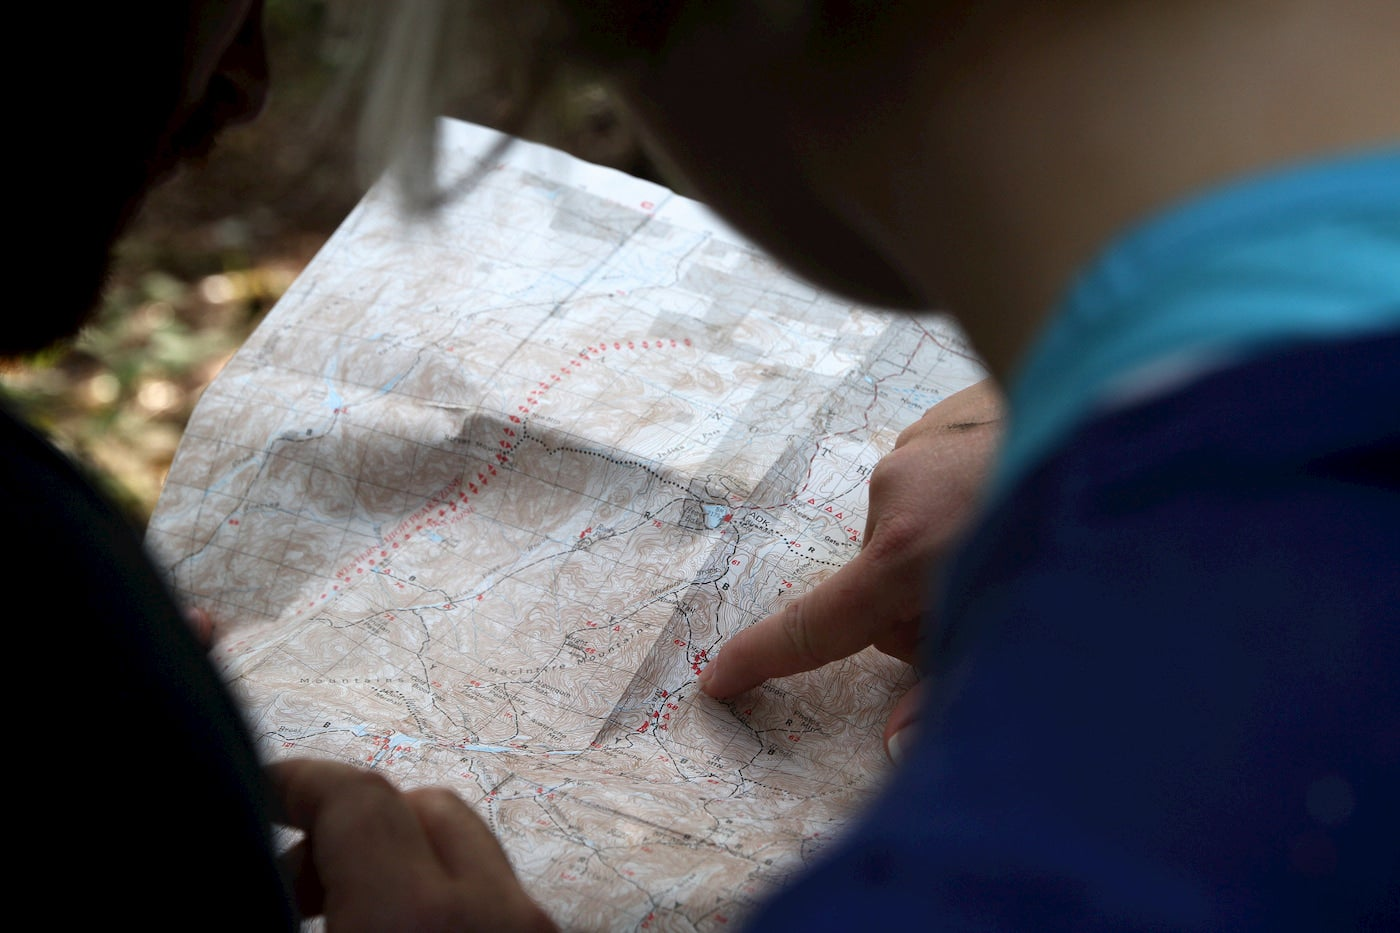 People reading a topographic map.